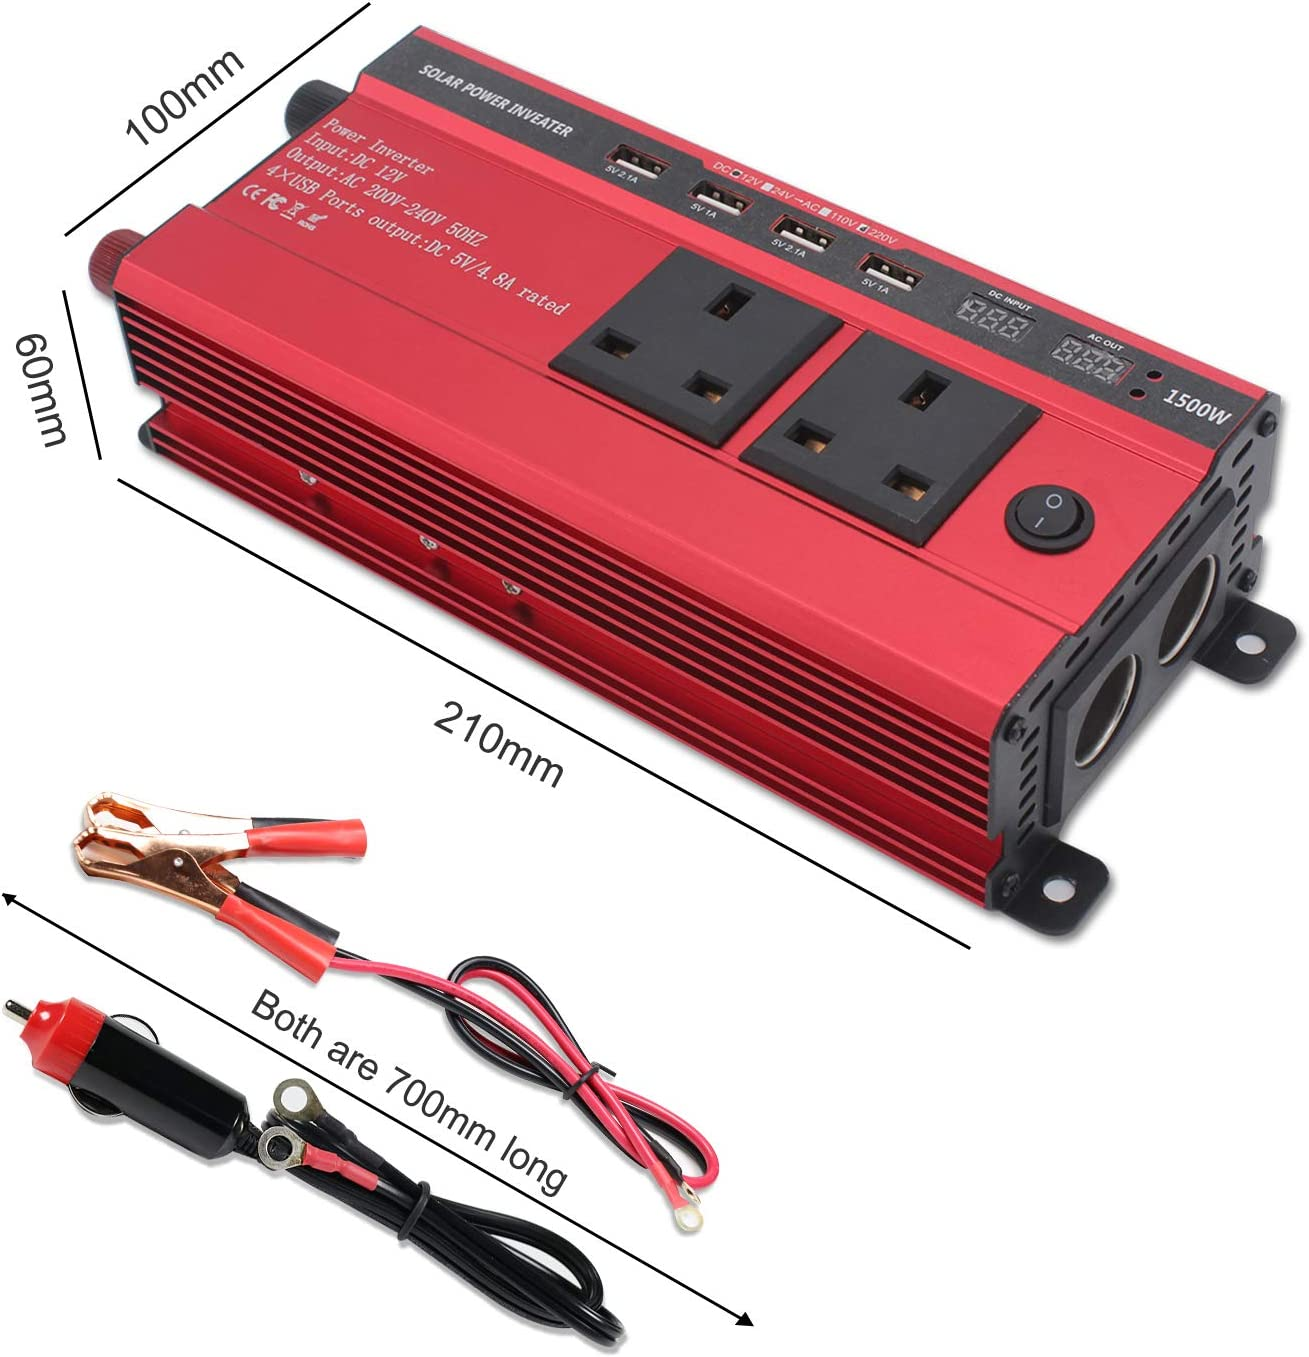 LVYUAN 1500W Power Inverter 12V to 240V AC Car Converter with 3.1A 4 USB 2 AC Sockets Car Adapter With LED Display